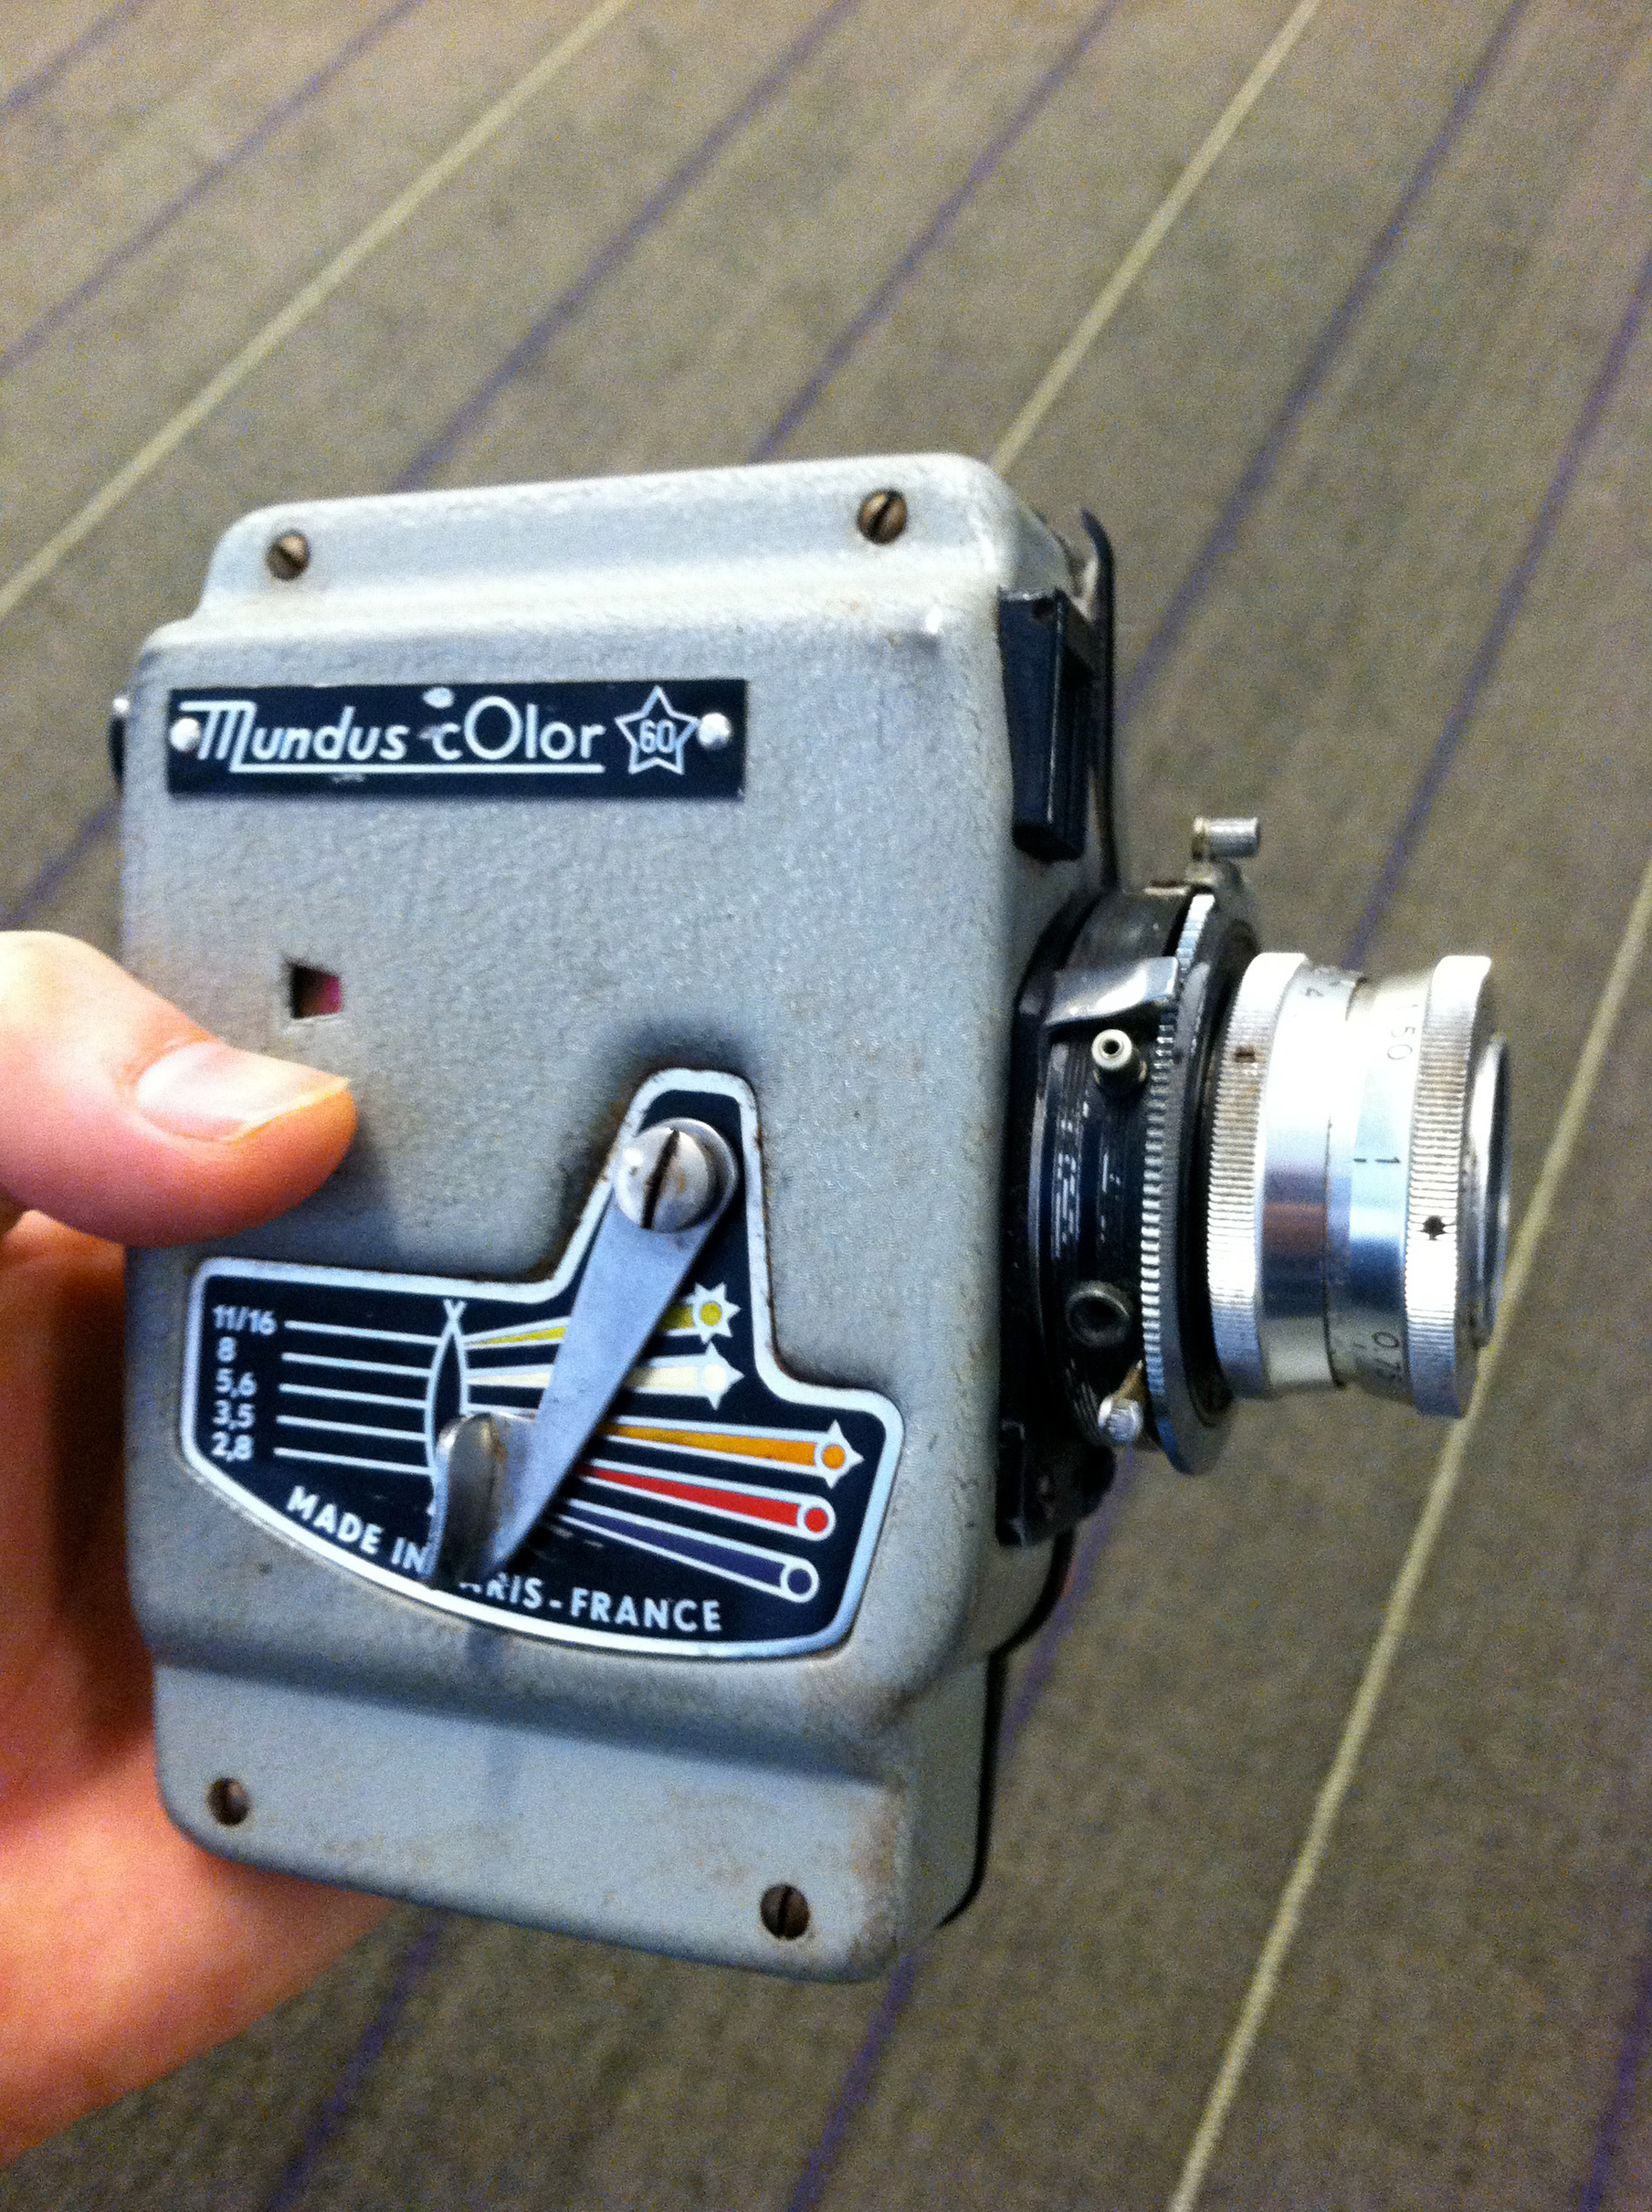 The Mundus Color 60 is one of the most beautifully designed cameras of the 60s.